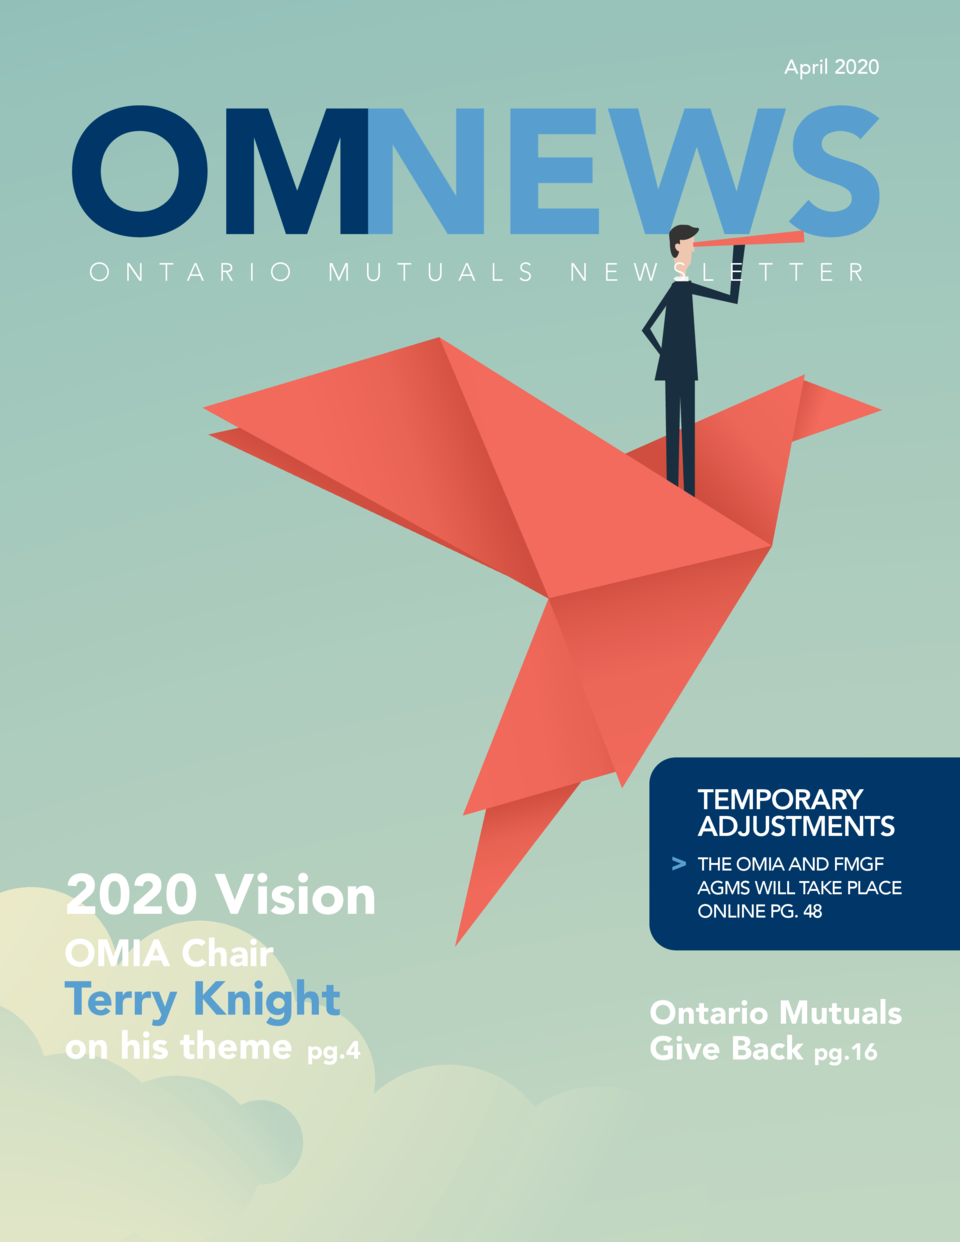 April 2020  O N T A R I O  M U T U A L S  2020 Vision OMIA Chair  Terry Knight on his theme  pg.4  N E W S L E T T E R    ...